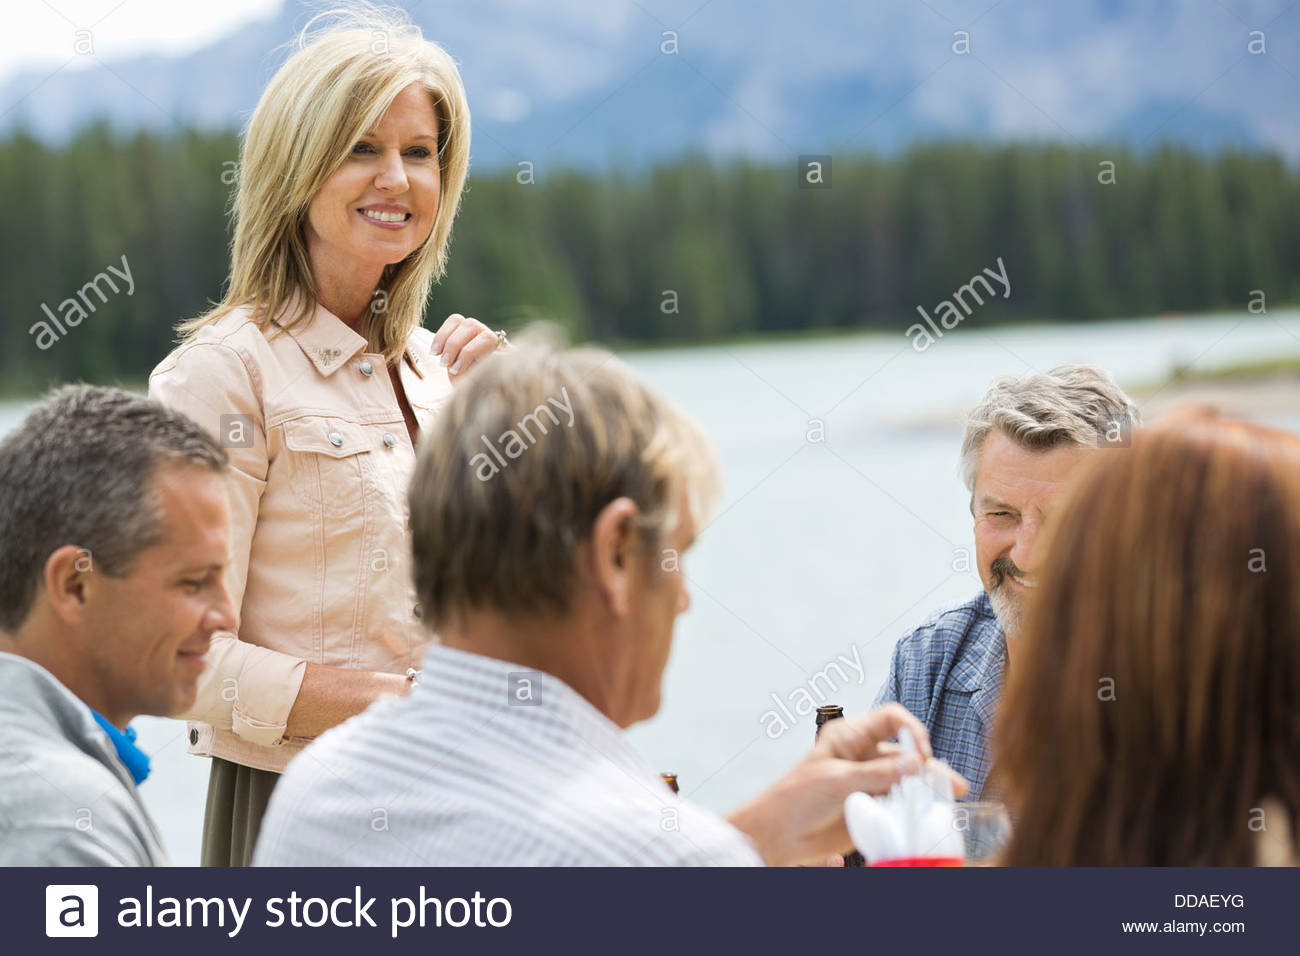 Mature woman socializing with friends outdoors - Stock Image